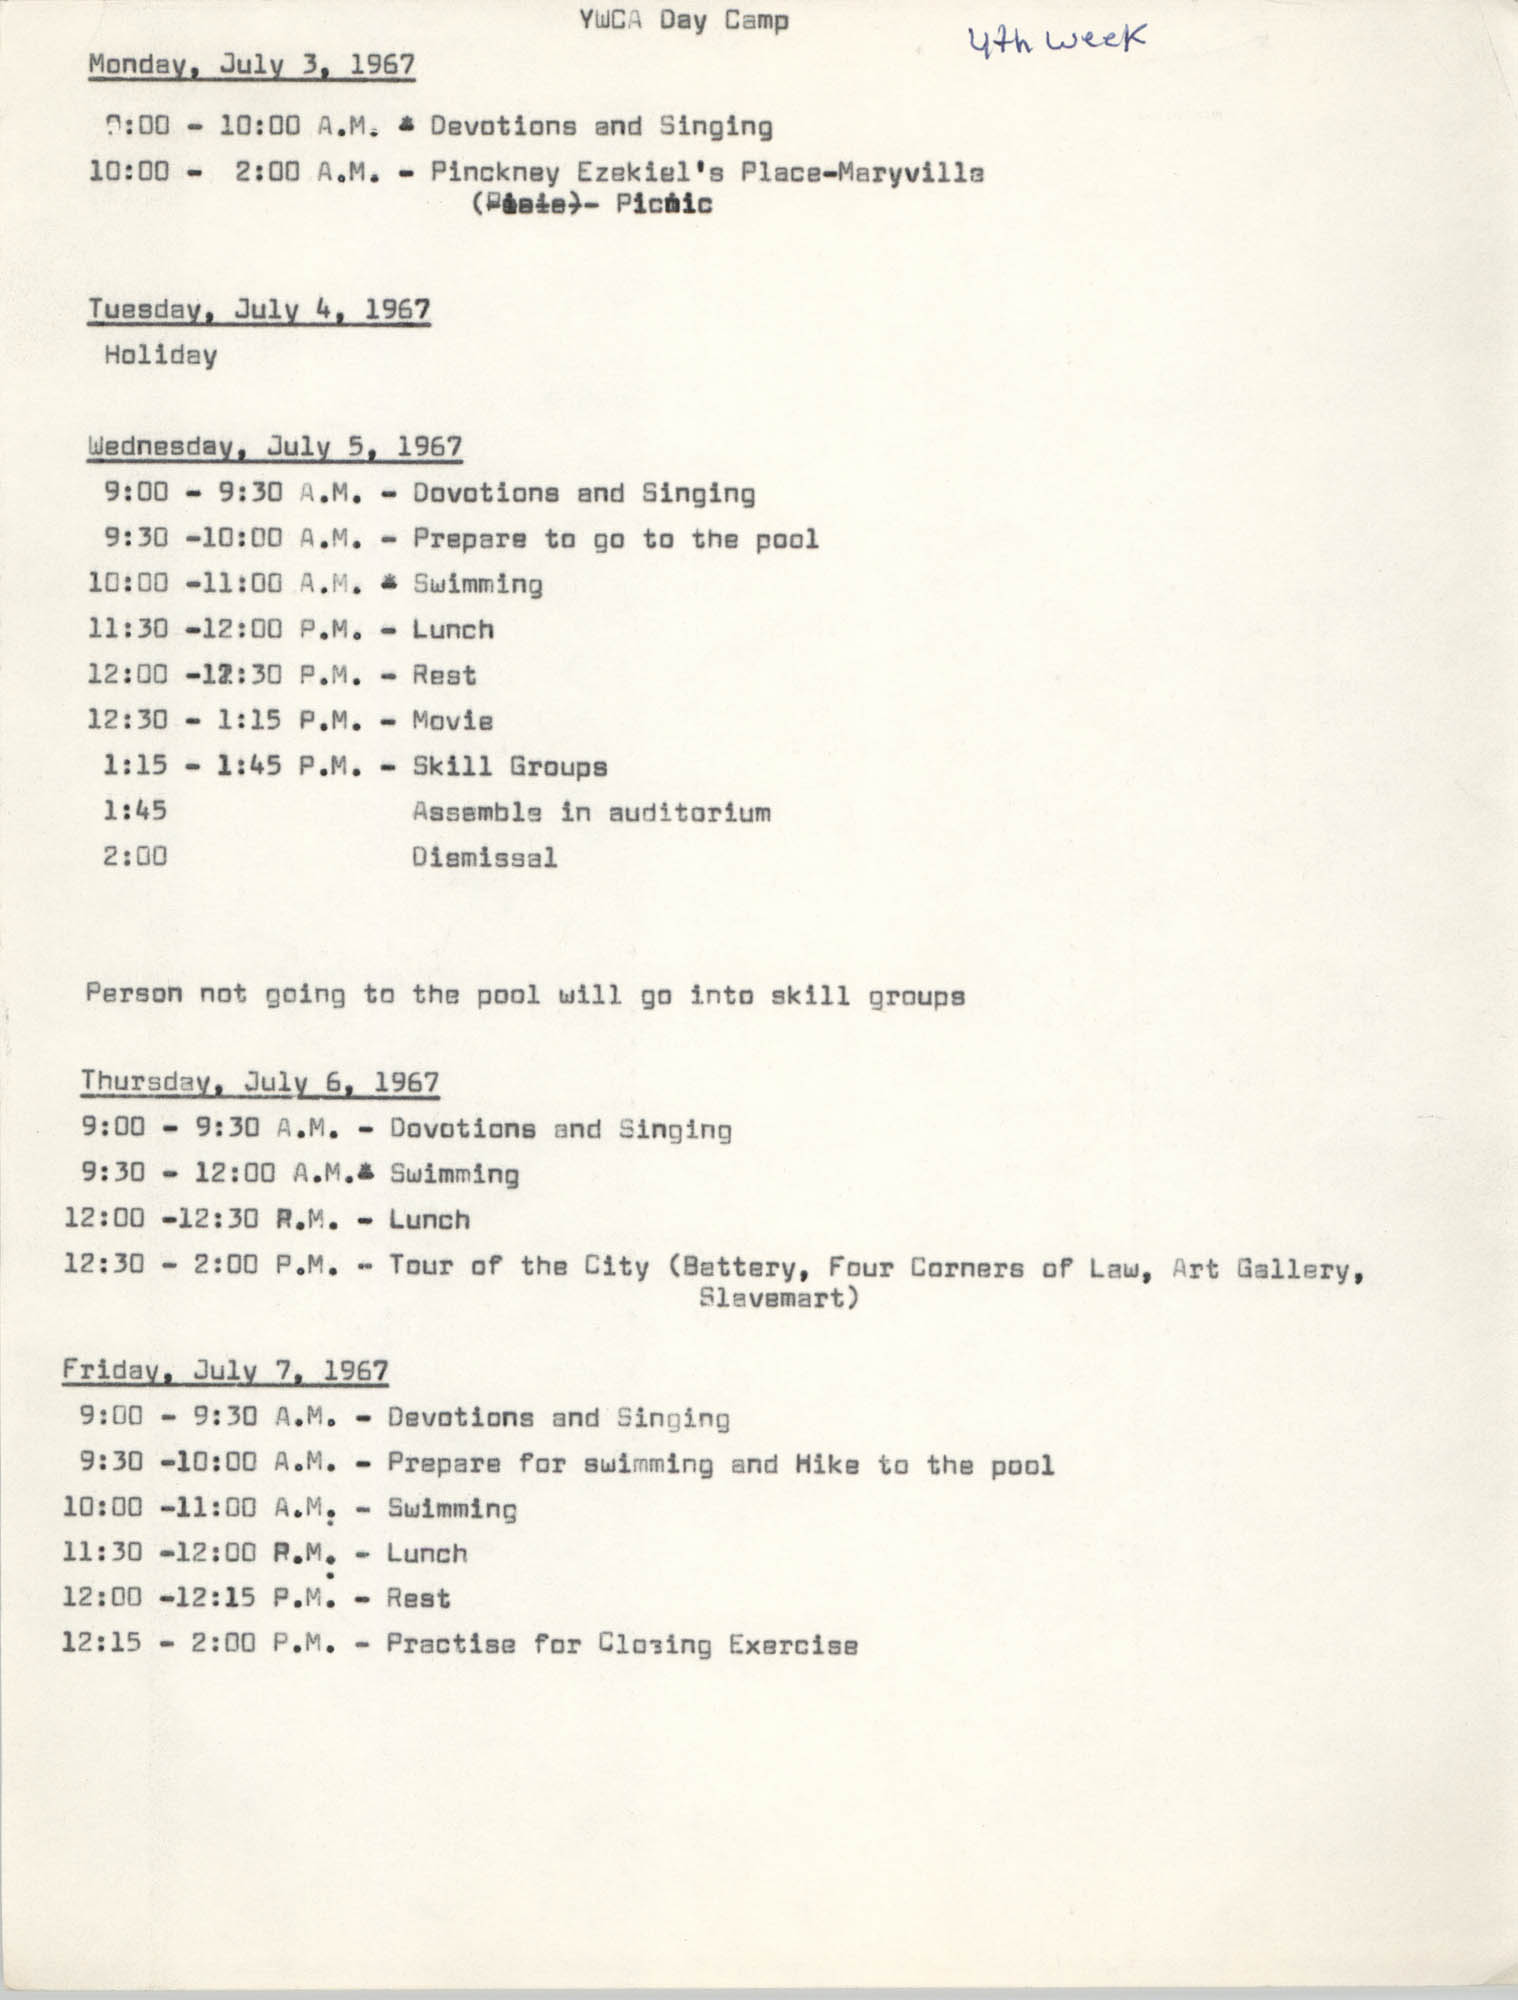 Coming Street Y.W.C.A. Day Camp, July 3-7, 1967